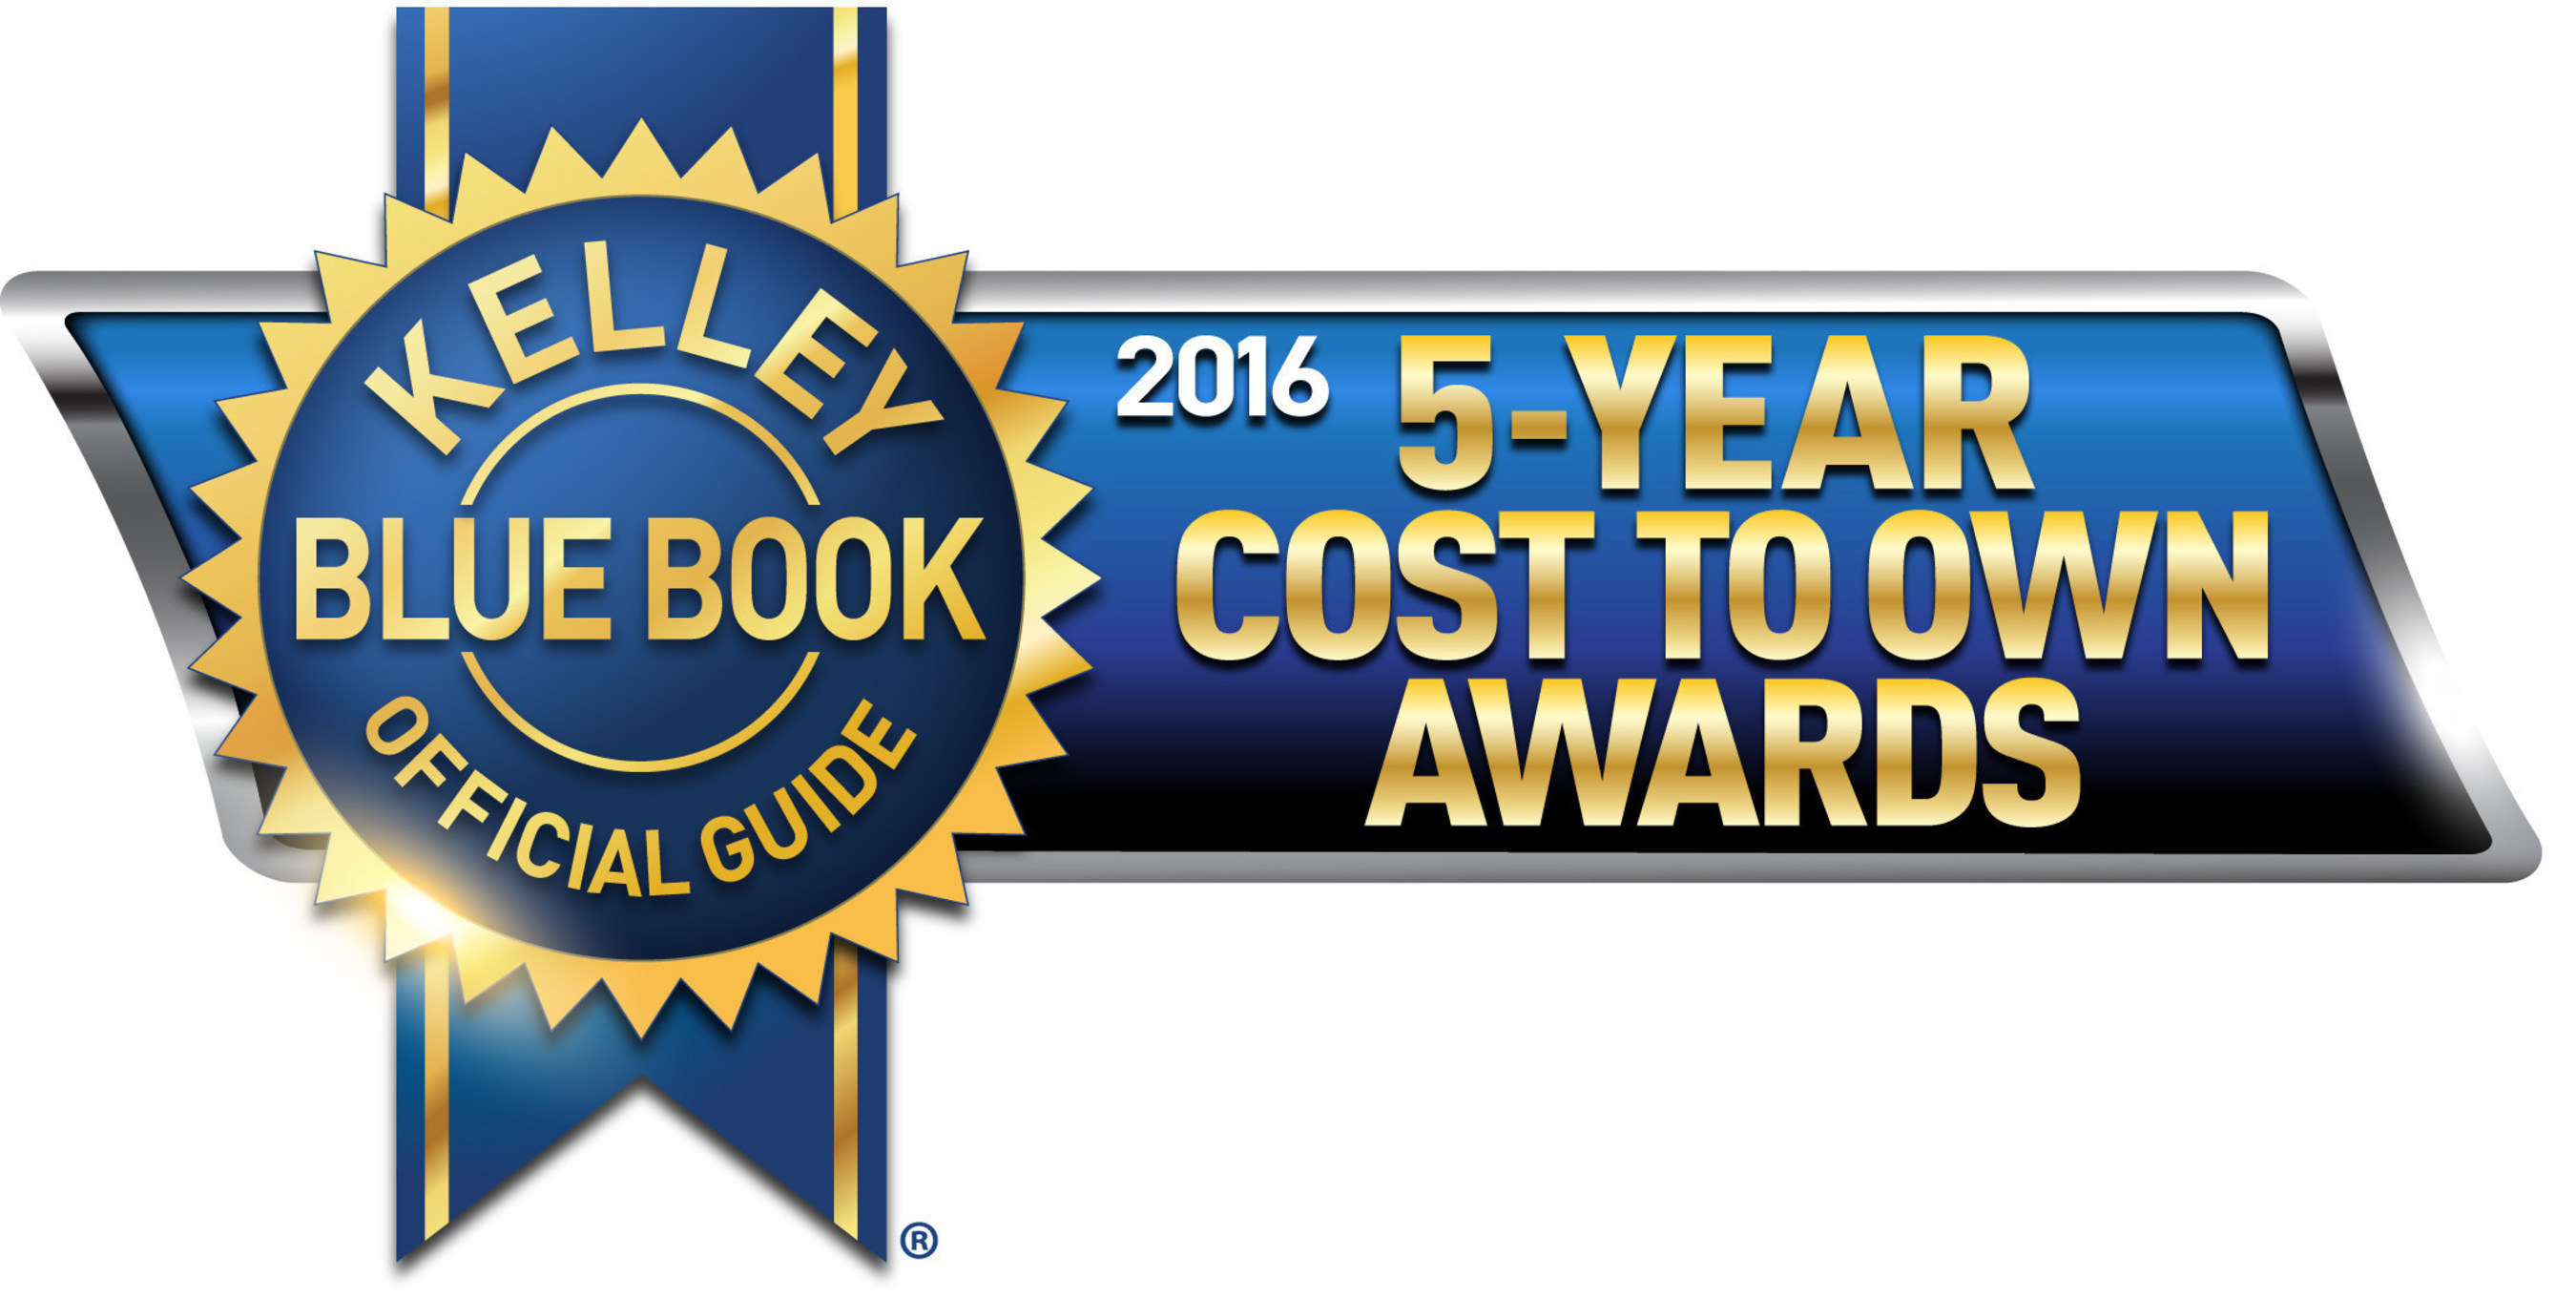 Blue Book Value for Cars Used Best Of 2016 5 Year Cost to Own Award Winners Announced by Kelley Blue Book